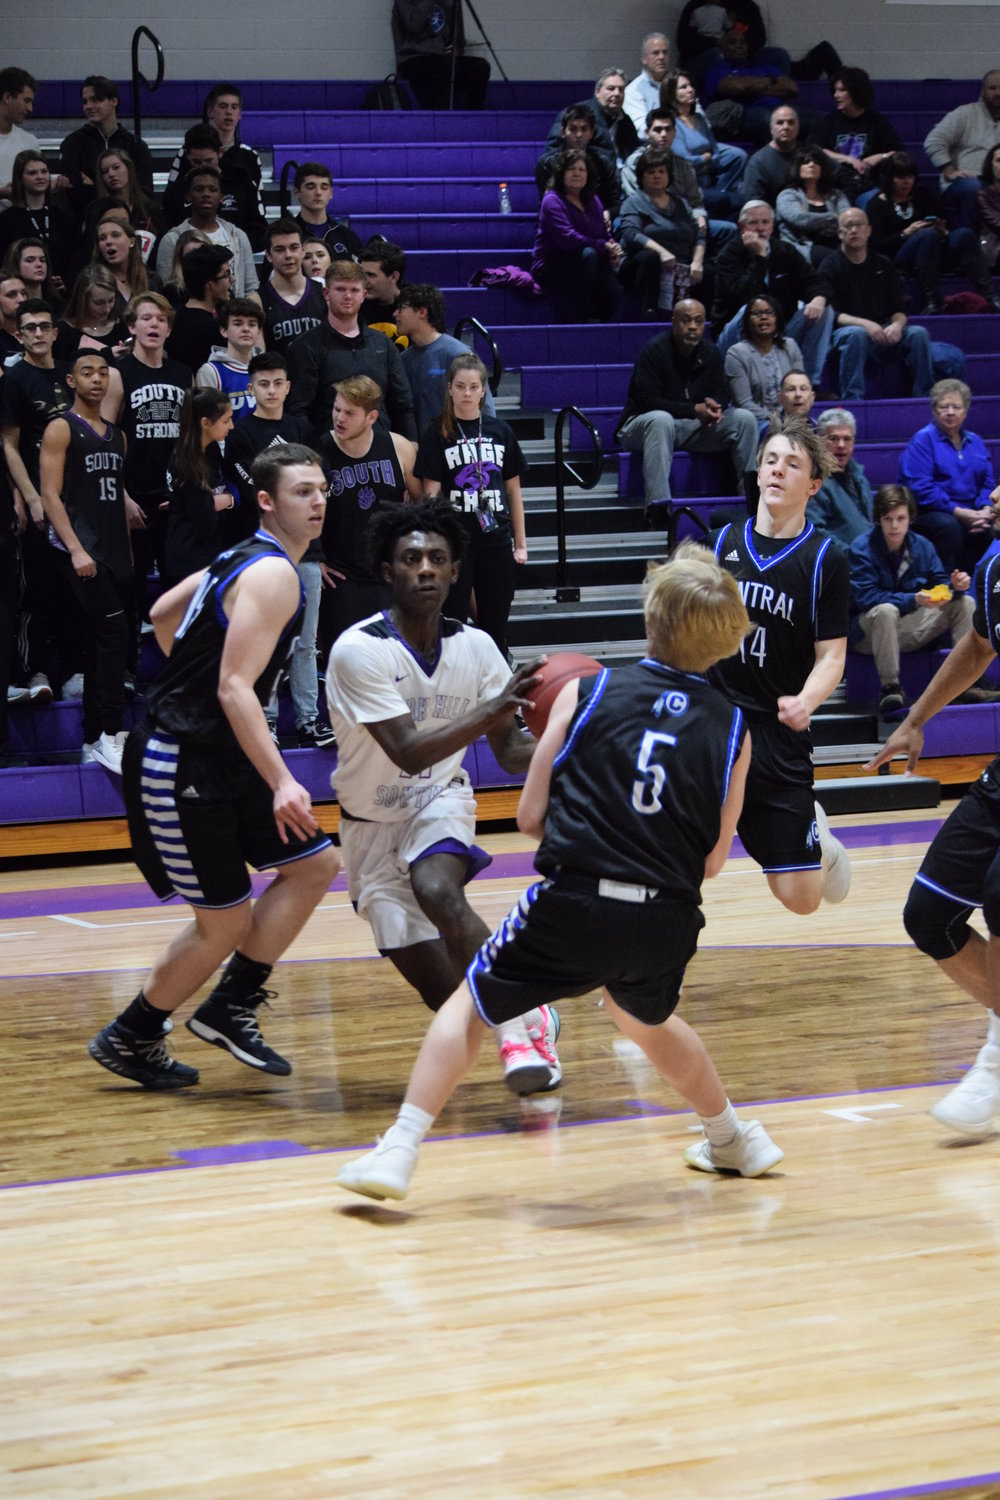 BRYCE MERENESS/Citizen photo Park Hill South junior Lamell Robinson, center, looks for a driving lane in the Panthers 63-48 win against St. Joseph Central on Friday, Feb. 16 at Park Hill South High School.